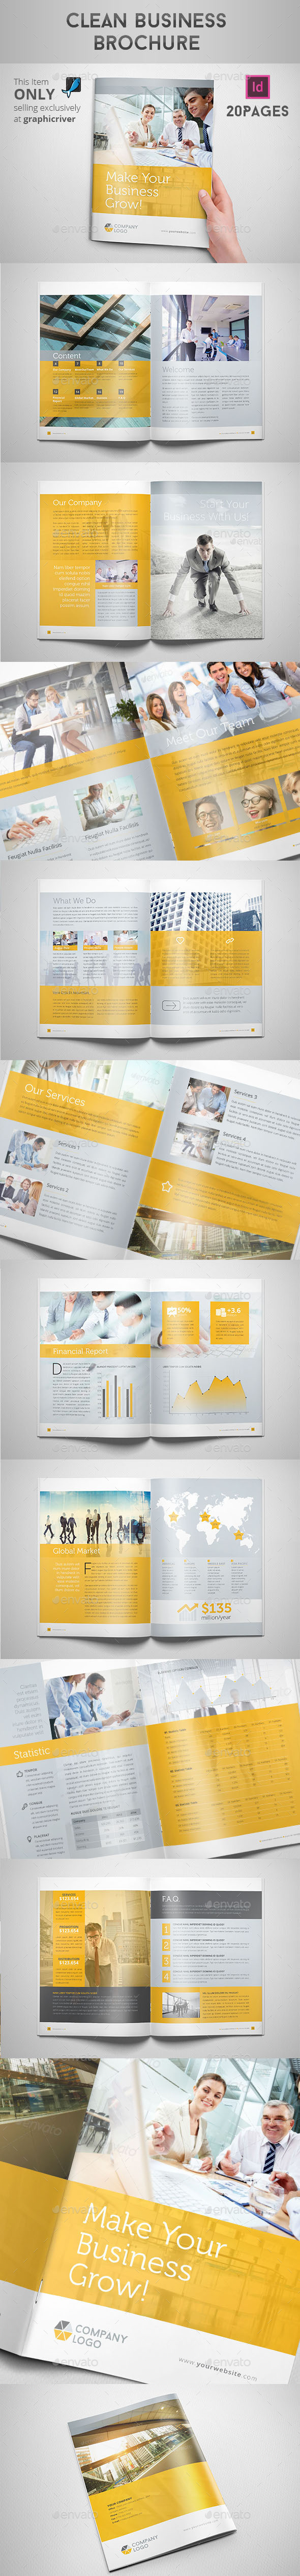 Clean Business Brochure